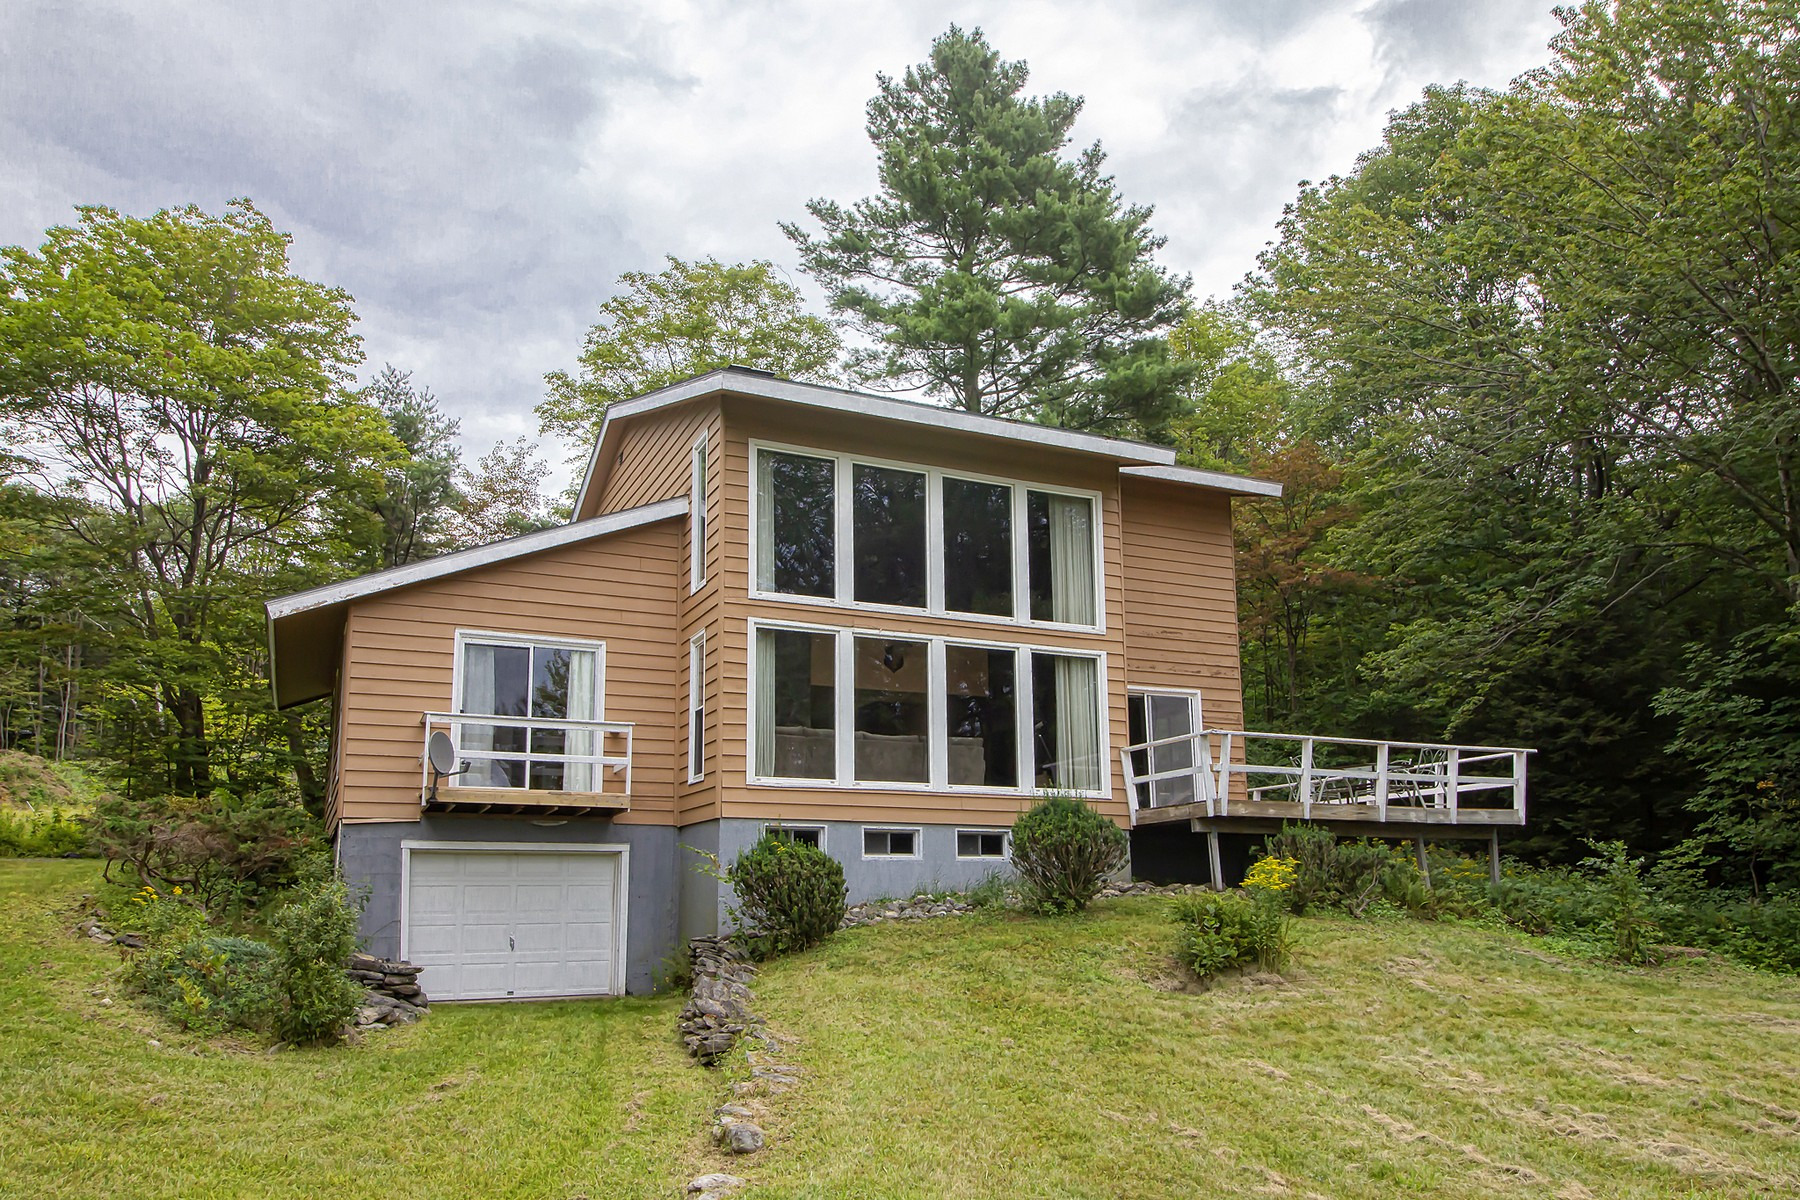 Single Family Homes for Sale at 248 Deer Hill Road Whitingham, Vermont 05361 United States